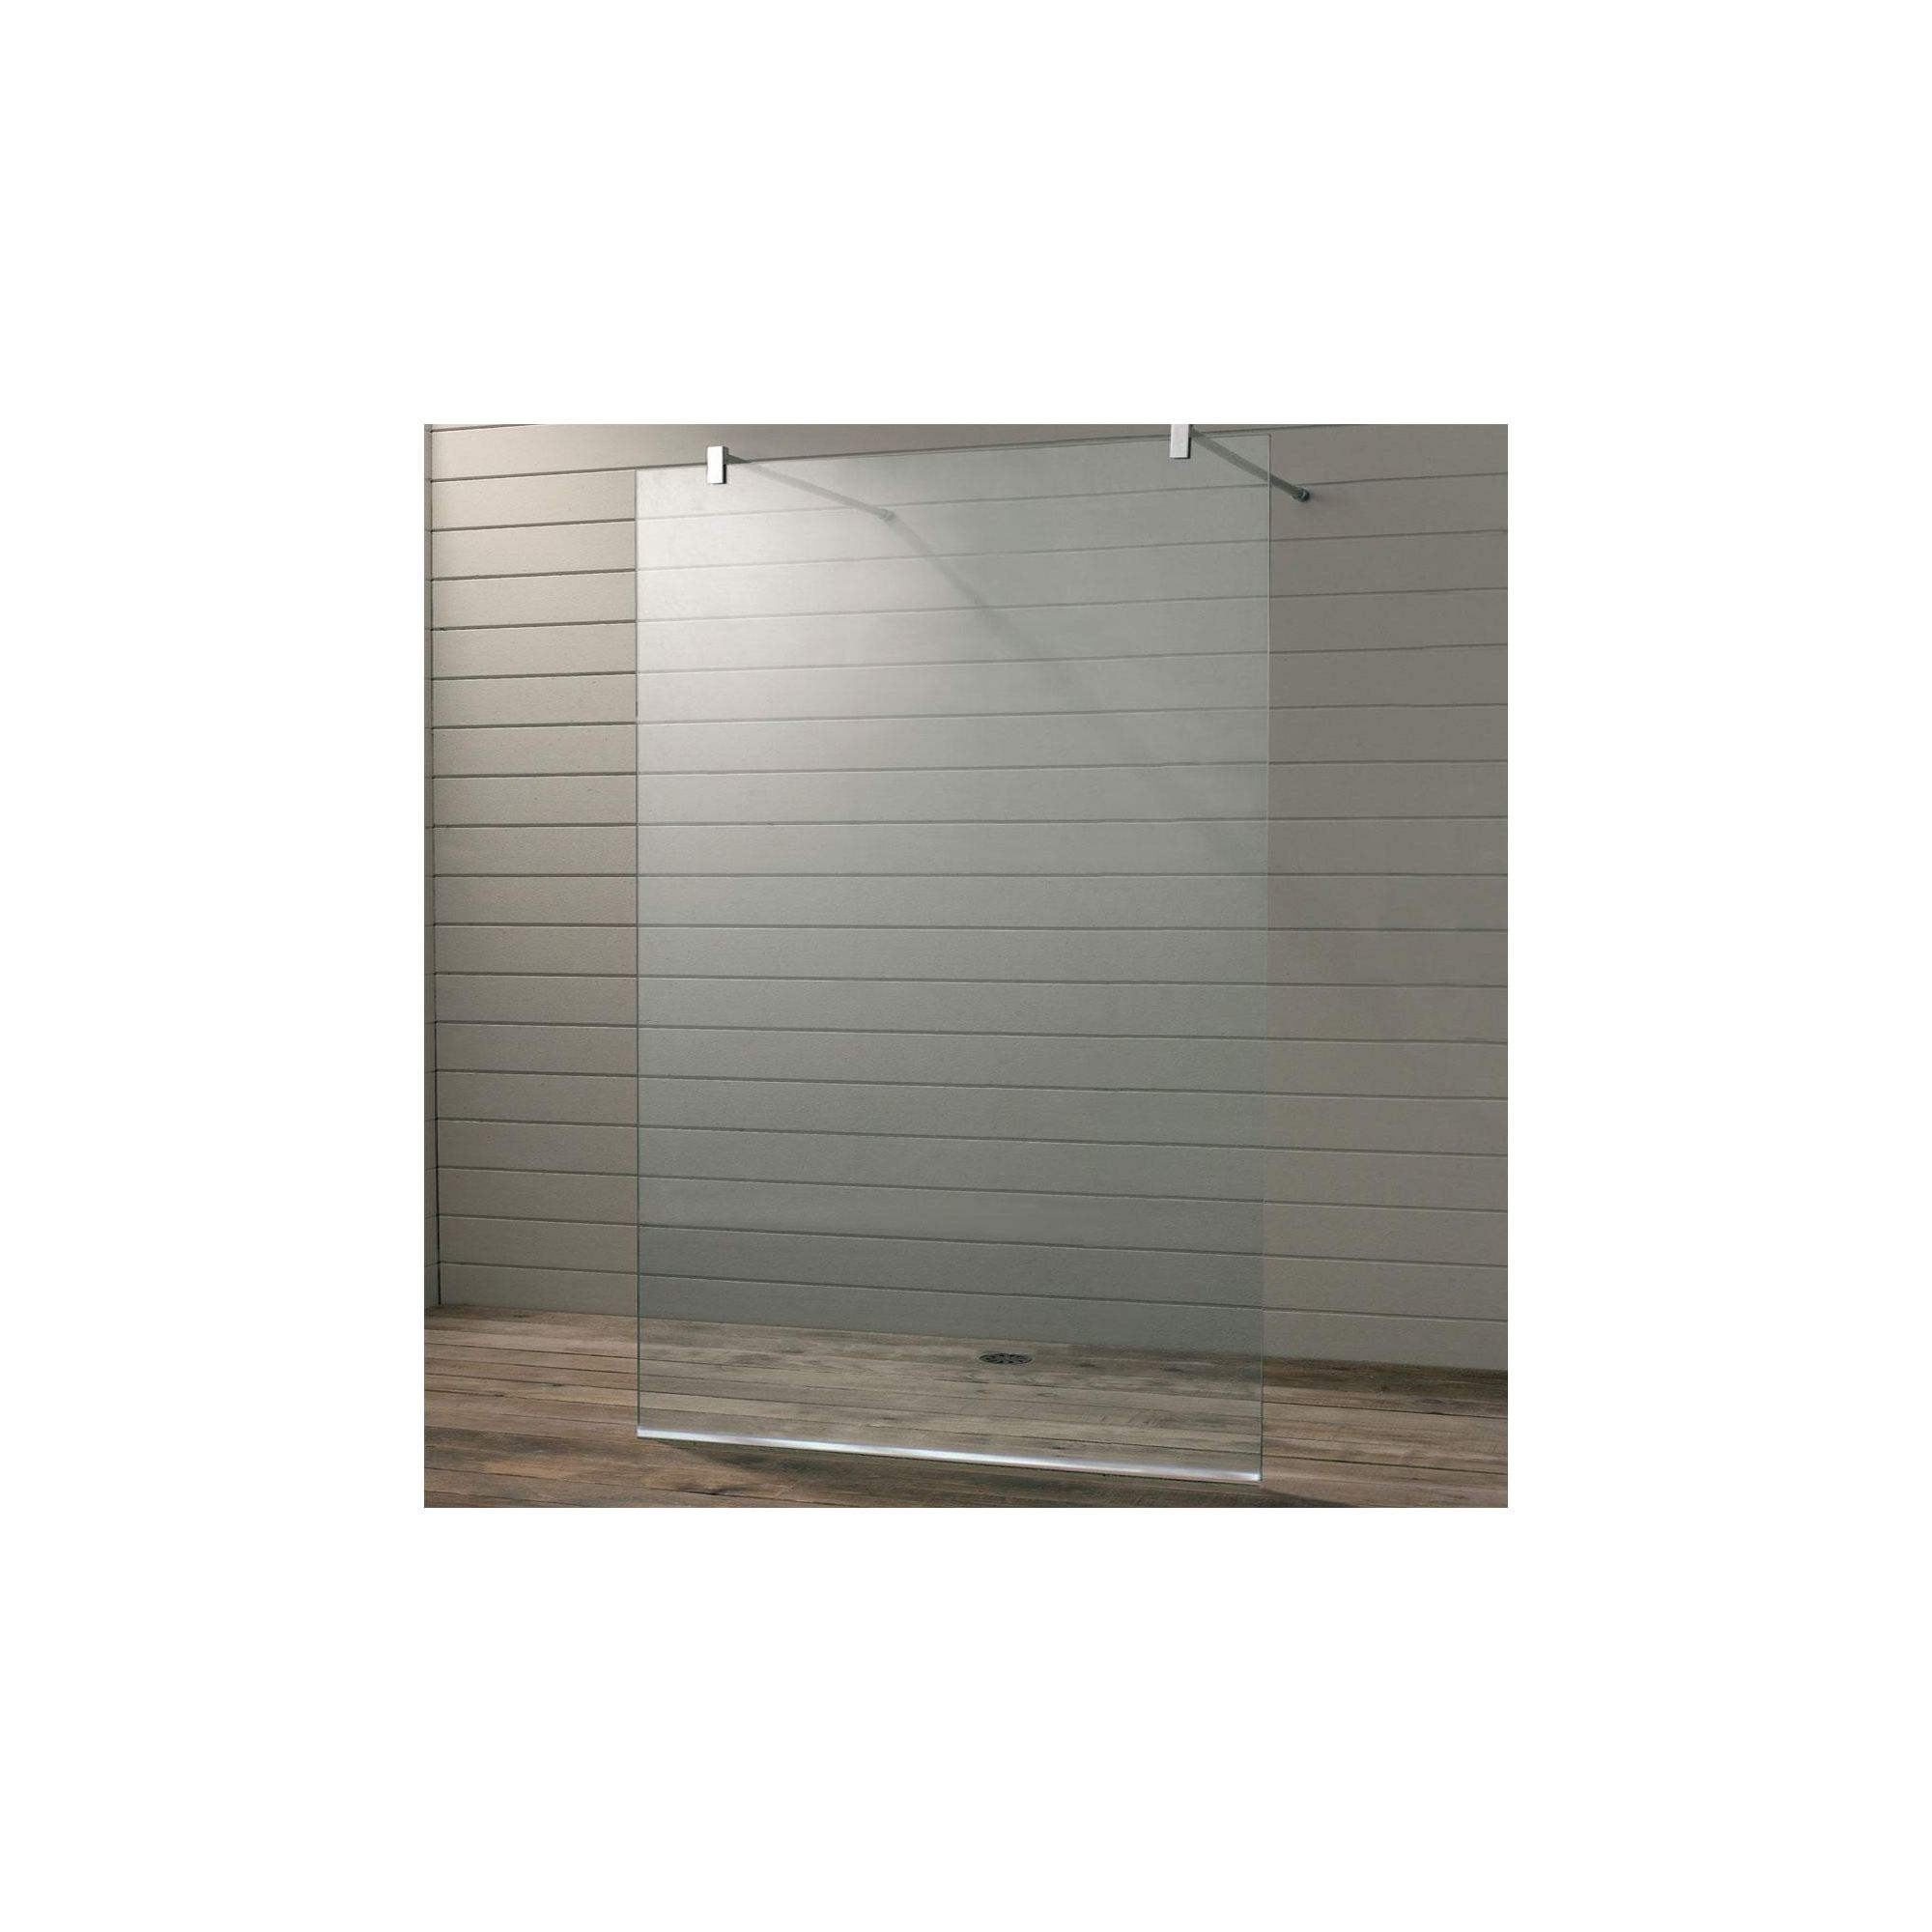 Duchy Premium Wet Room Glass Shower Panel, 800mm x 700mm, 10mm Glass, Low Profile Tray at Tesco Direct